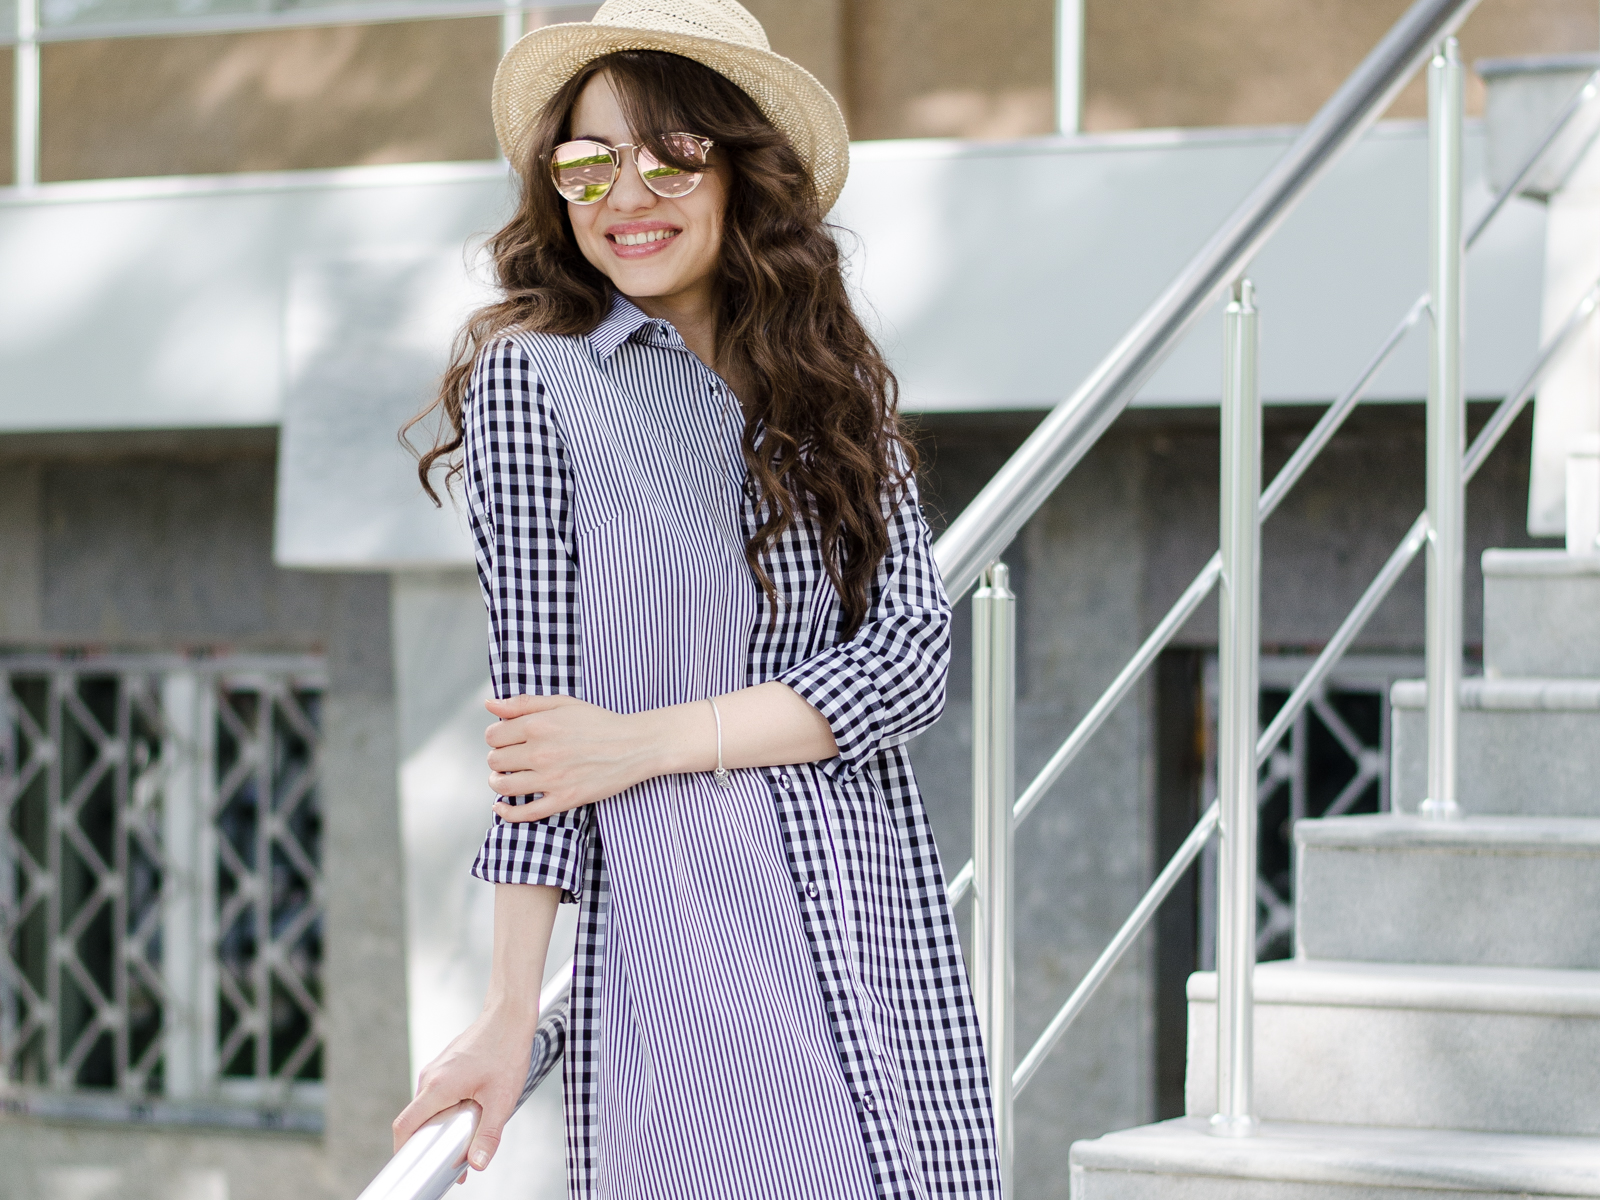 fashion blogger fashion diyorasnotes diyora beta shirt dress vipme espadrilles asos straw hat white bag